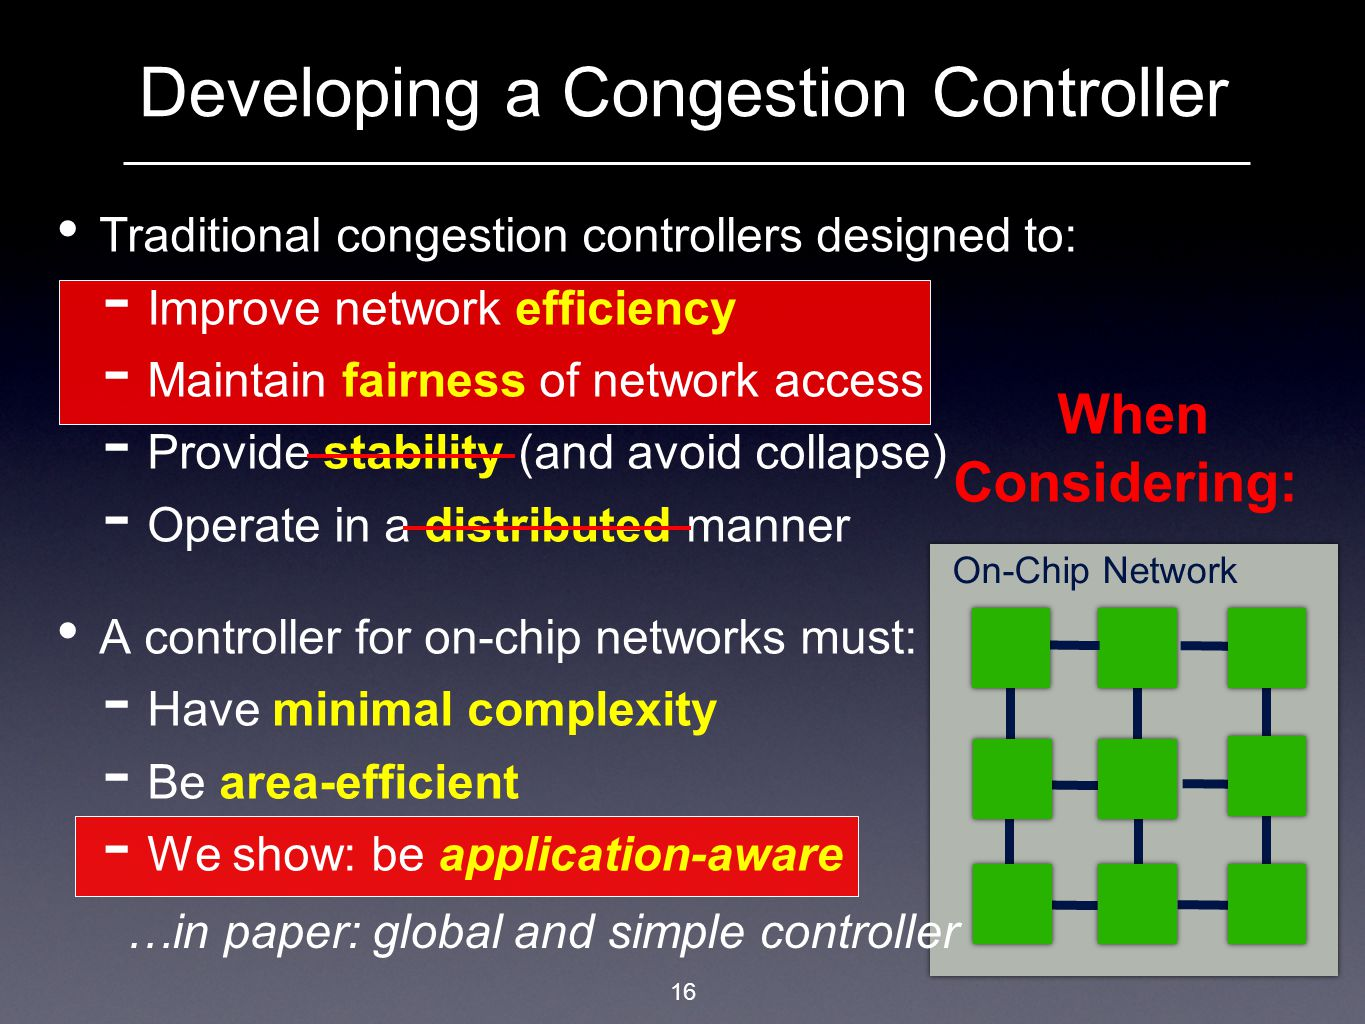 Traditional congestion controllers designed to:  Improve network efficiency  Maintain fairness of network access  Provide stability (and avoid collapse)  Operate in a distributed manner A controller for on-chip networks must:  Have minimal complexity  Be area-efficient  We show: be application-aware Developing a Congestion Controller 16 When Considering: On-Chip Network …in paper: global and simple controller